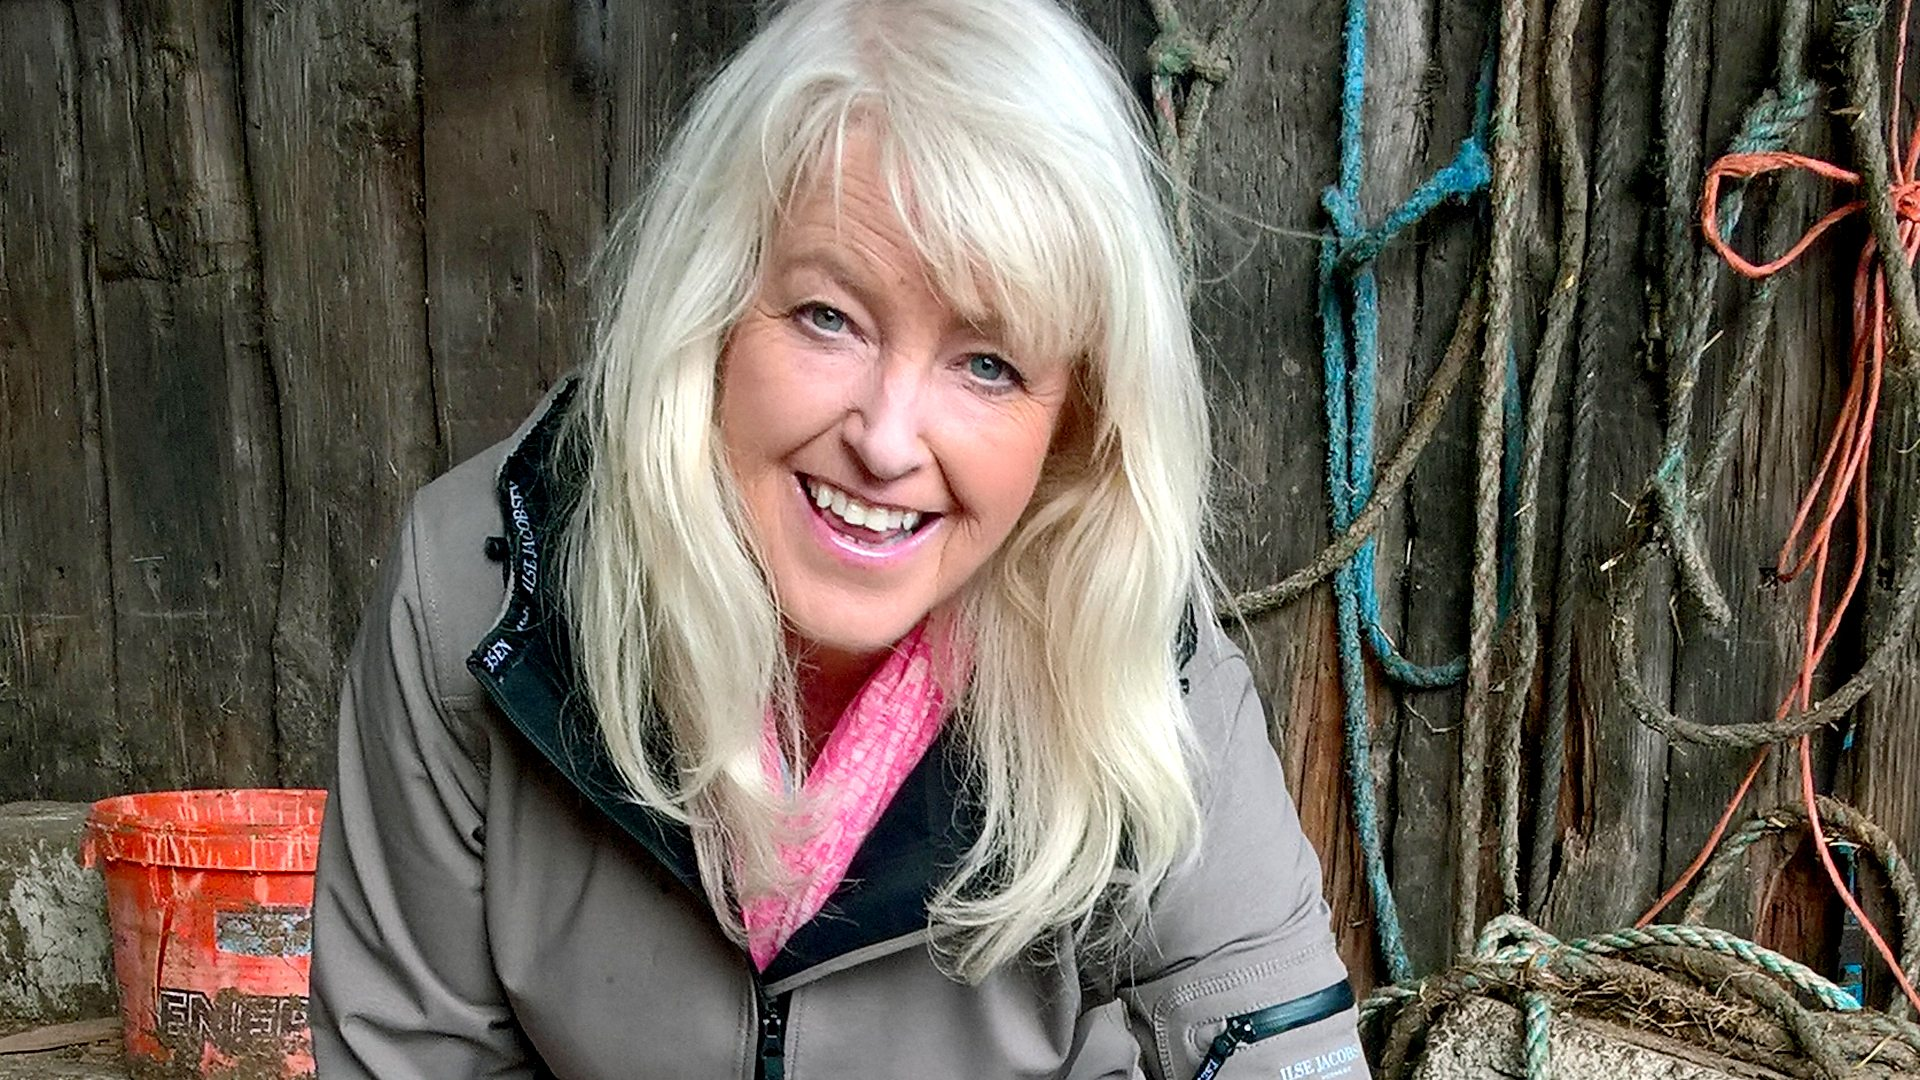 Episode 3   In the last programme in the series, Lesley Riddoch explores the rich connections between Scotland and Northern Ireland as expressed through faith and evident in business, agriculture and the arts. At an auction in Lanark she discovers the enduring links between Scottish and Ulster farmers, meets a Northern Irish composer in Glasgow winning over Scottish audiences with a performance inspired by Belfast and from Dundee to the Outer Hebrides meets the Northern Irish for whom Scotland is home from home.